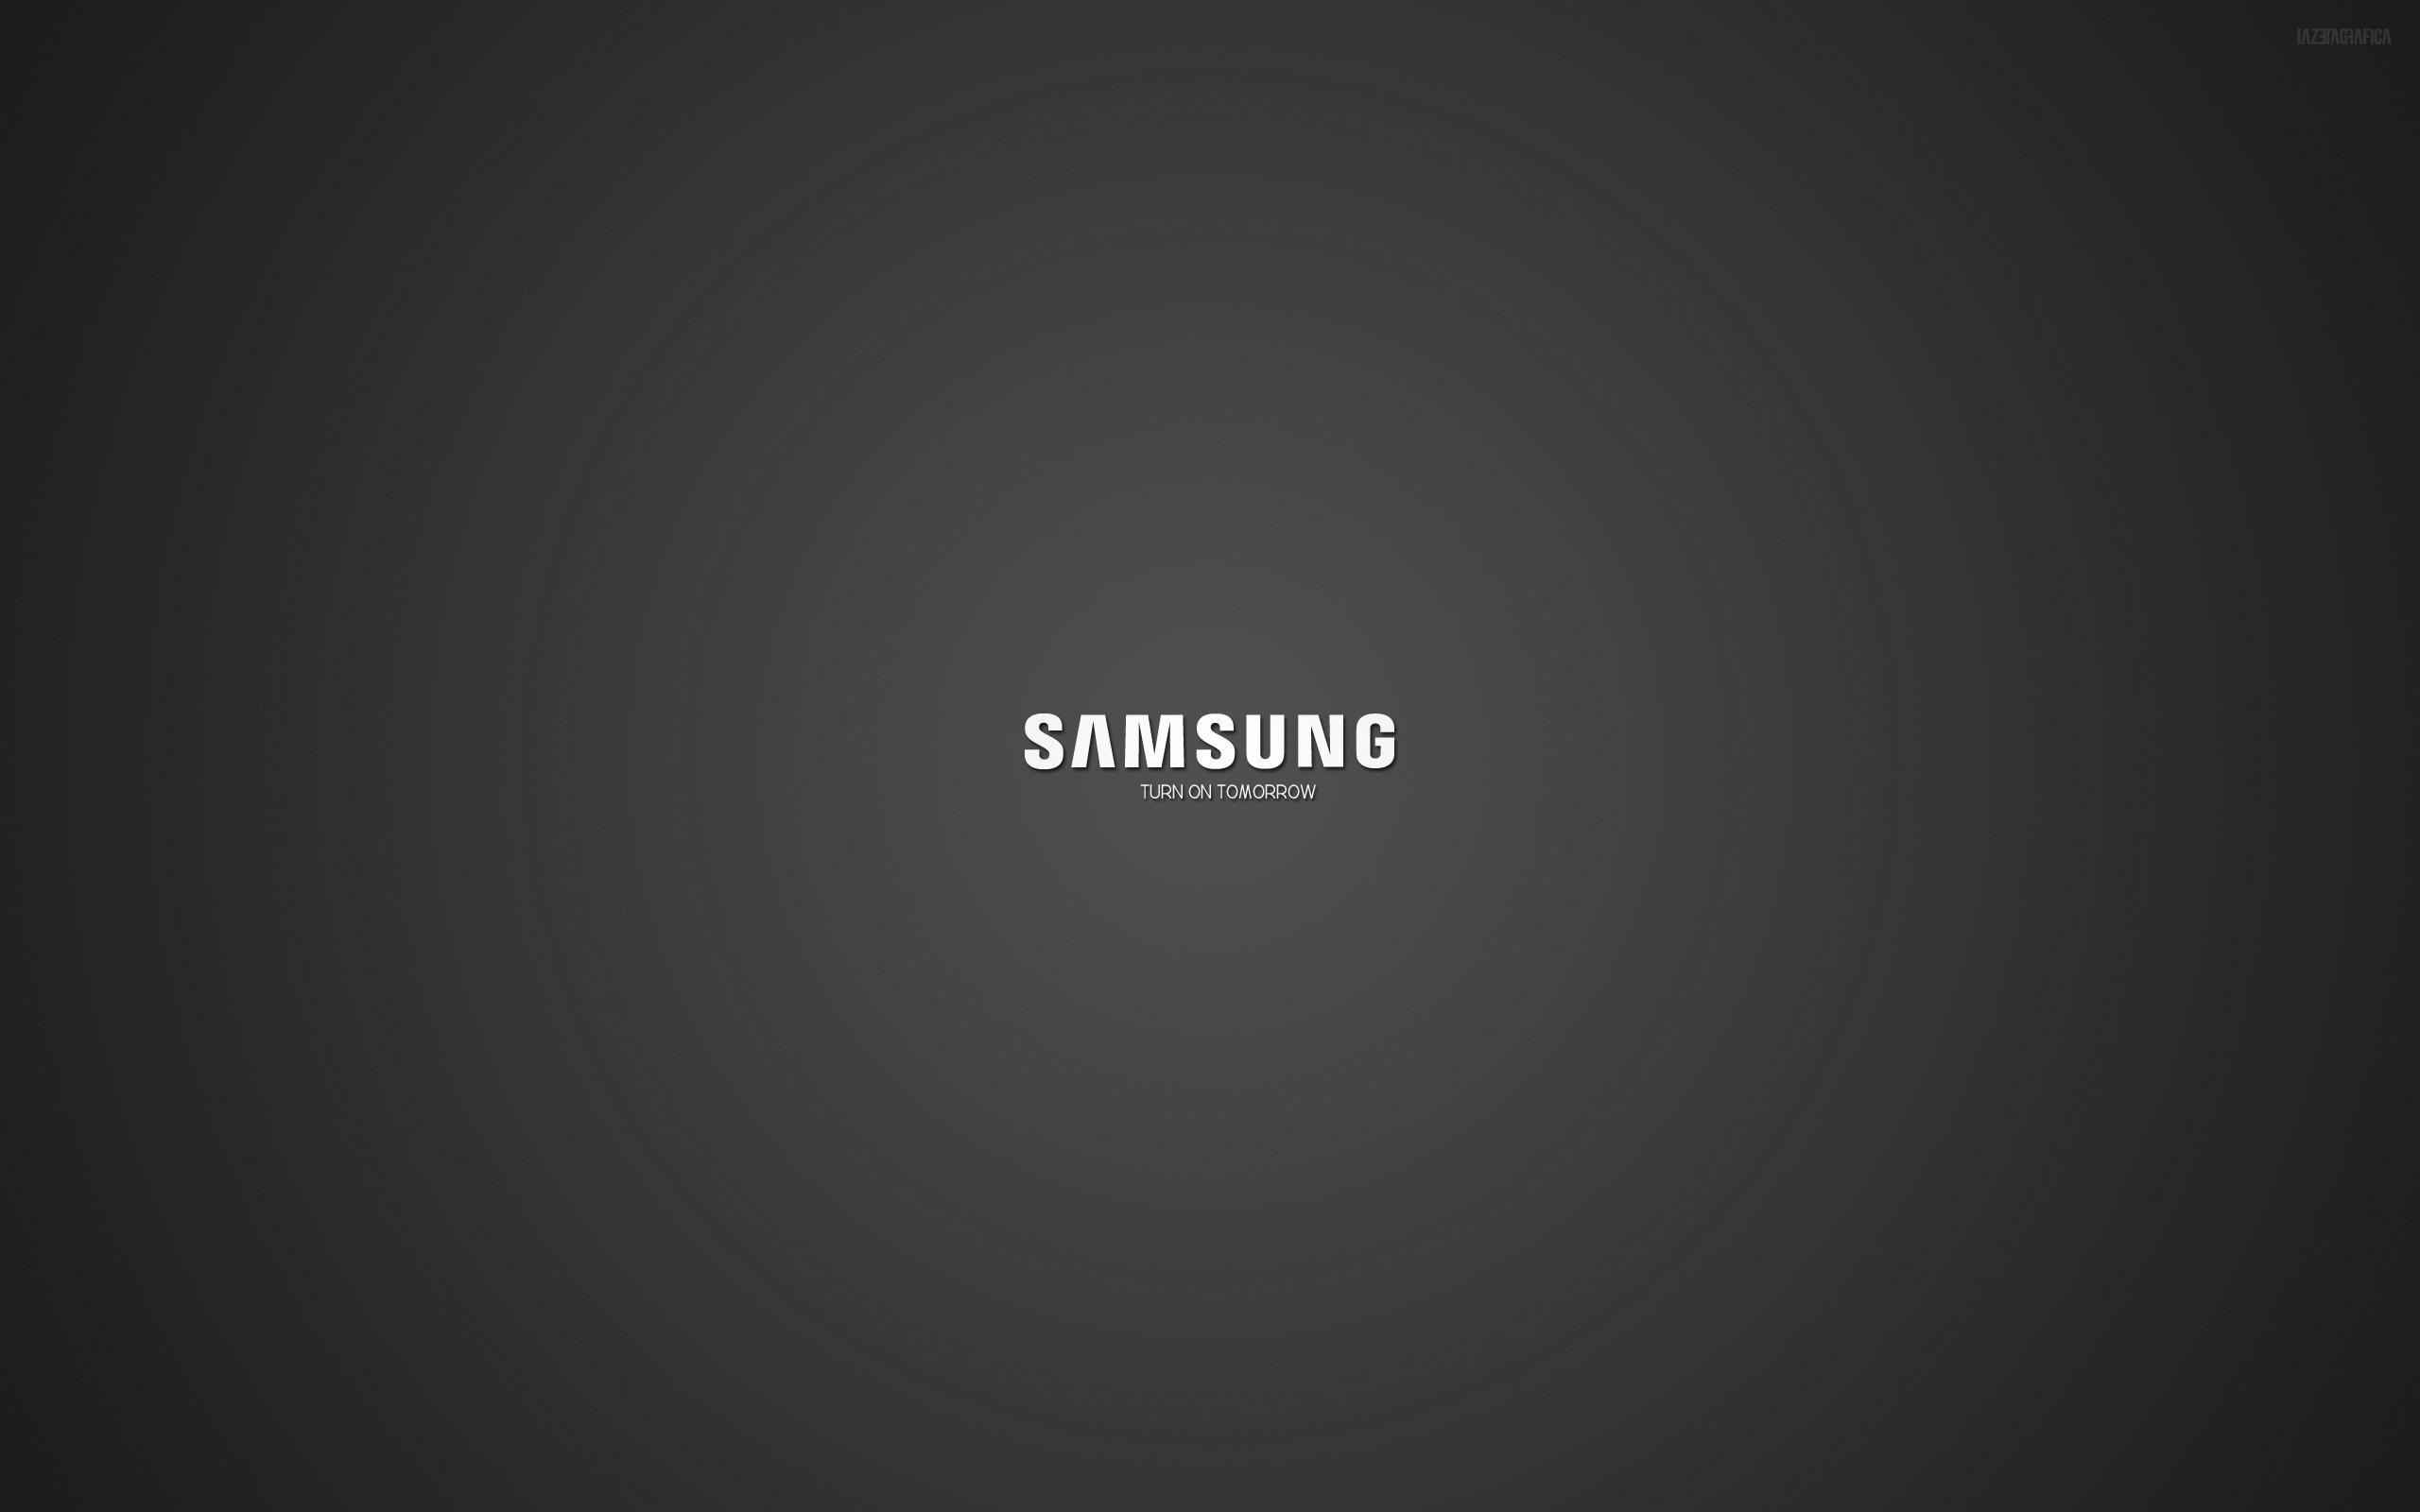 Samsung Logo Wallpapers - Wallpaper Cave